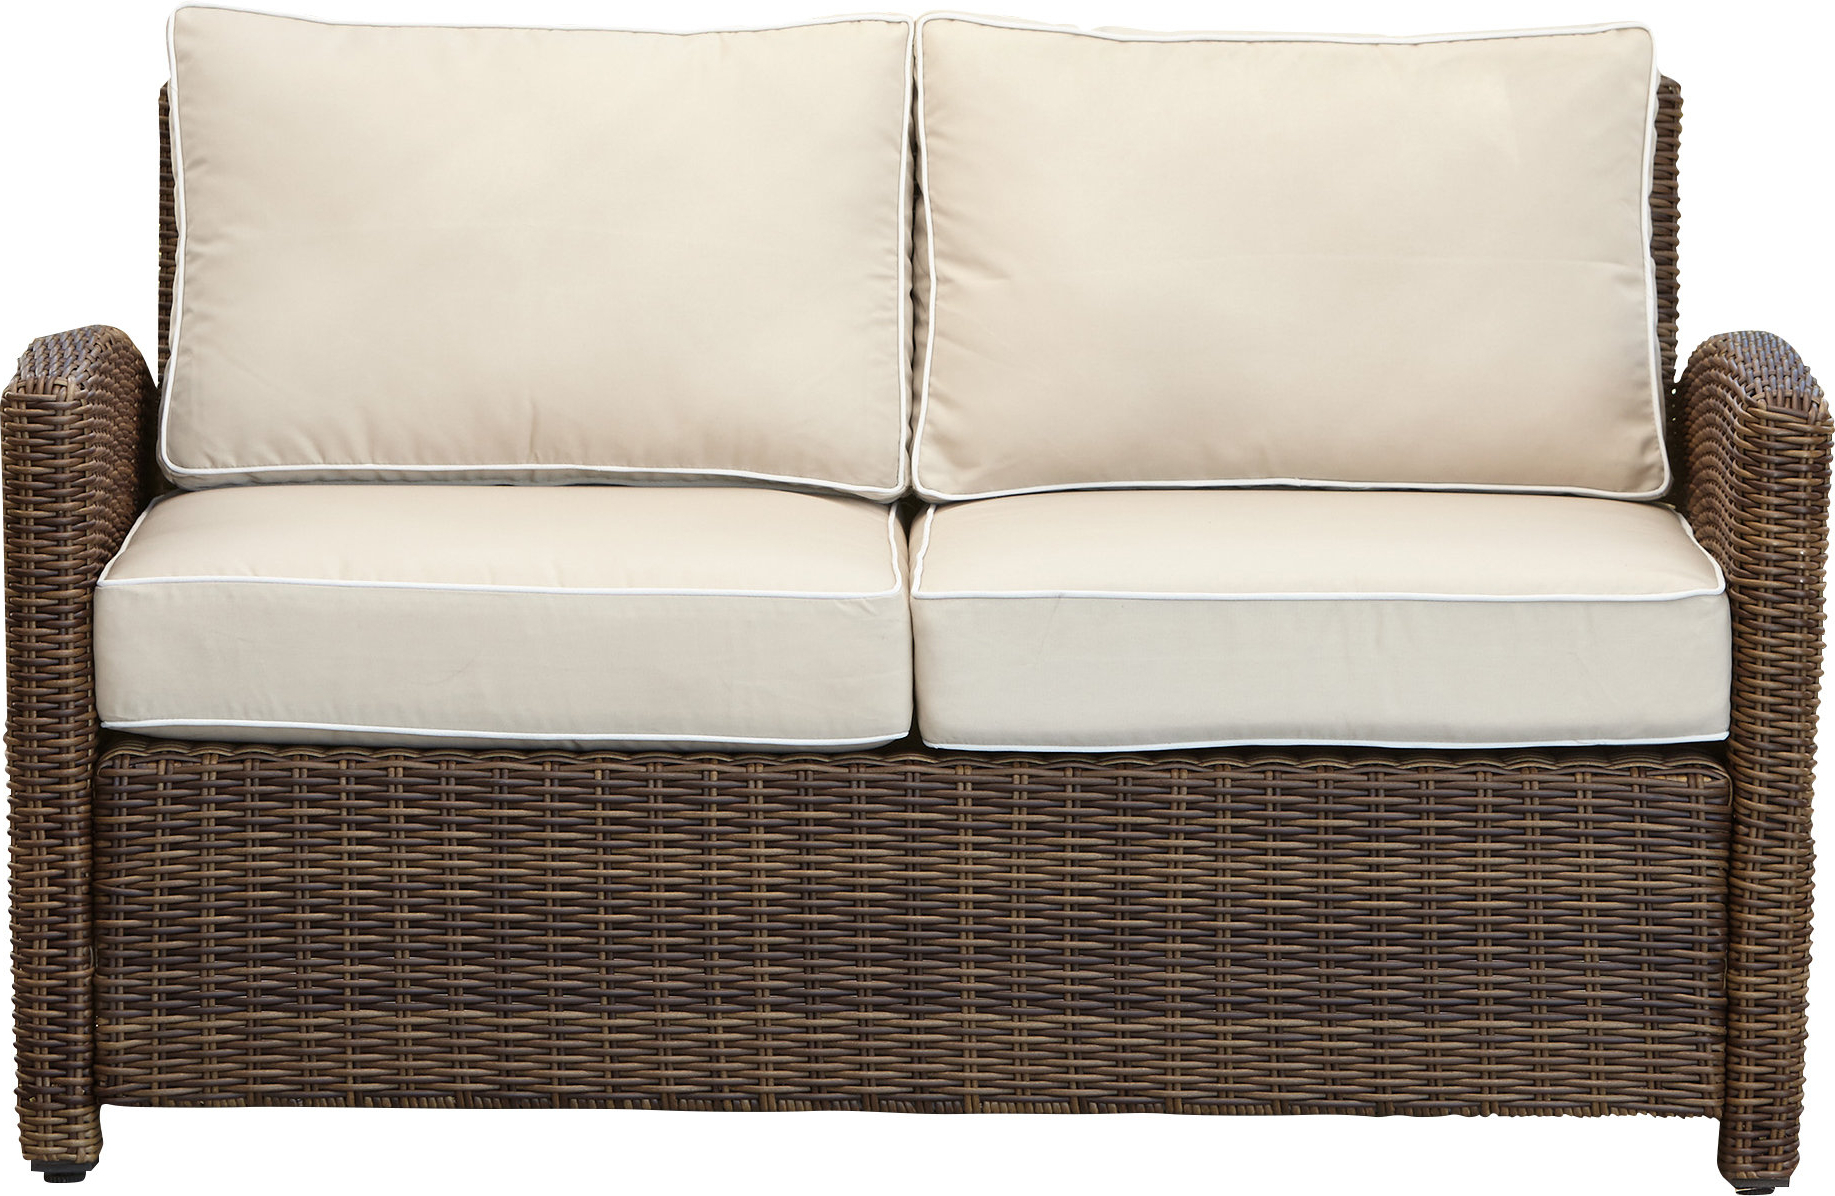 Fashionable Mosca Patio Loveseats With Cushions Throughout Lawson Wicker Loveseat With Cushions (View 4 of 20)